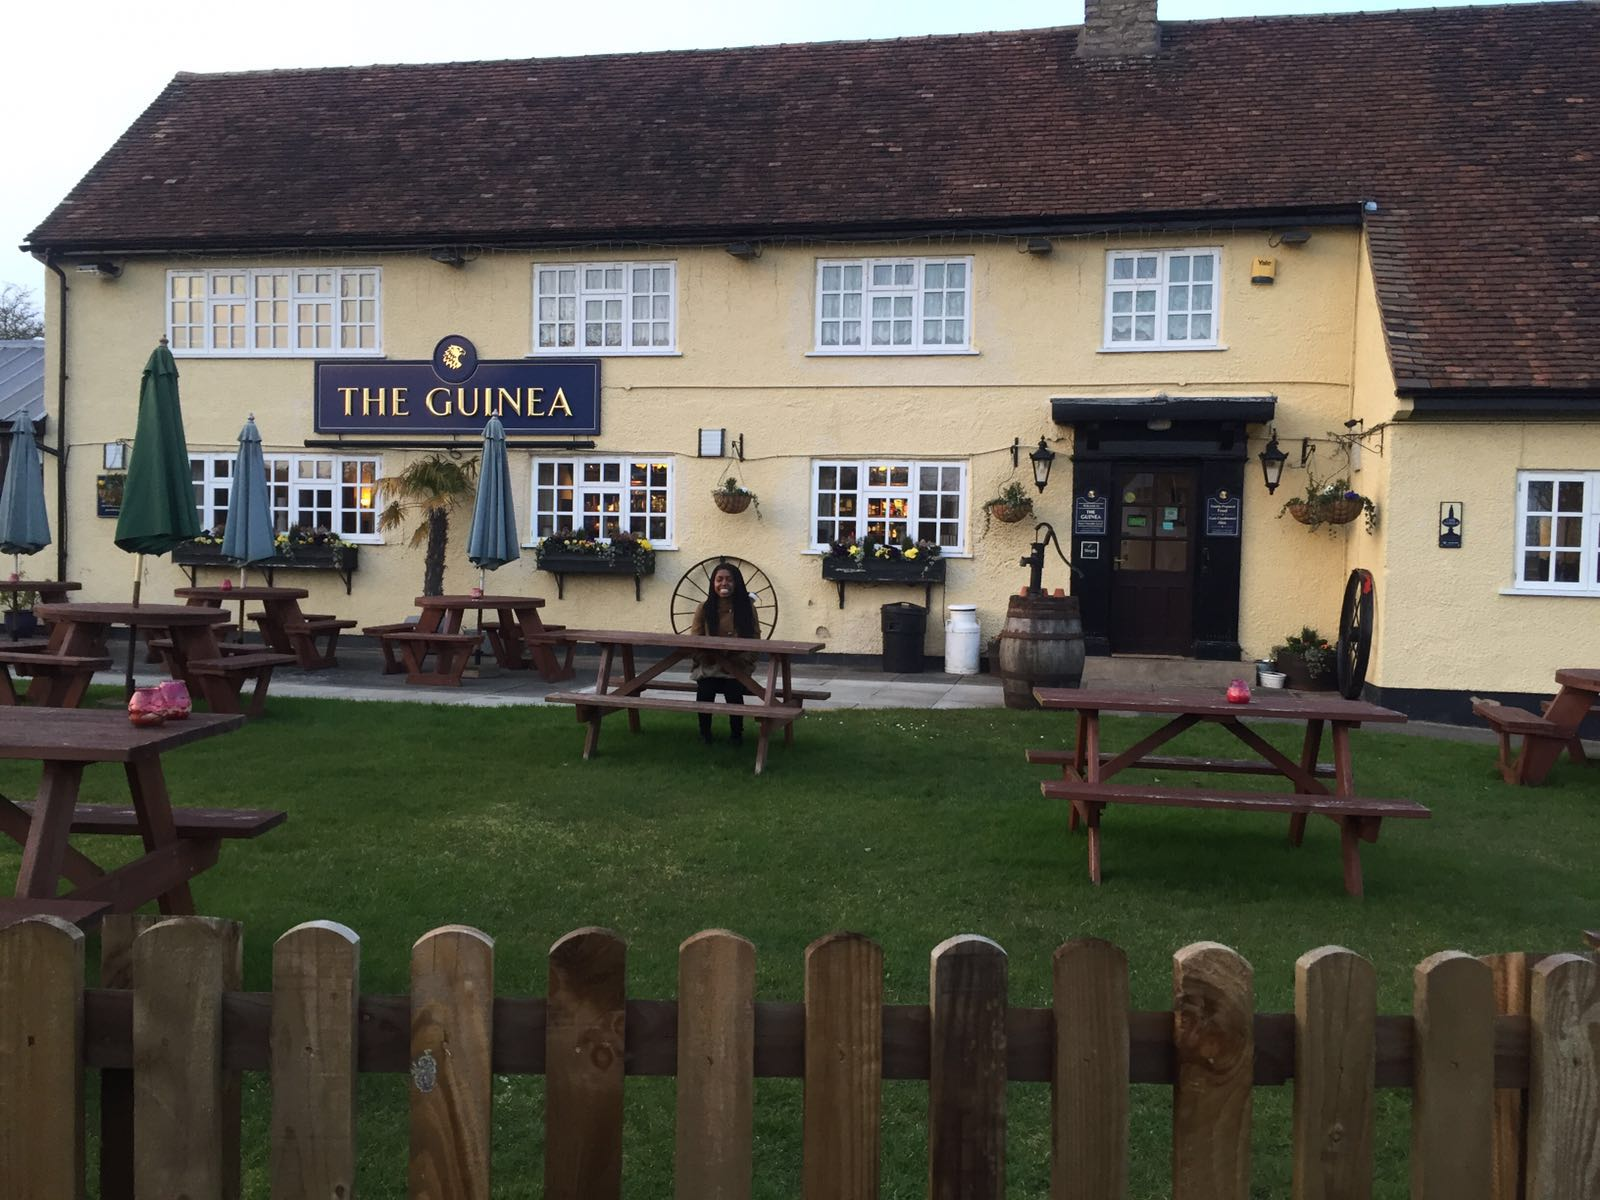 So what have i been up to overnight trip at moggerhanger park hotel the guinea was actually the cutest little country pub it felt authentic and homely i dont think my descriptions will give it full justice though publicscrutiny Image collections